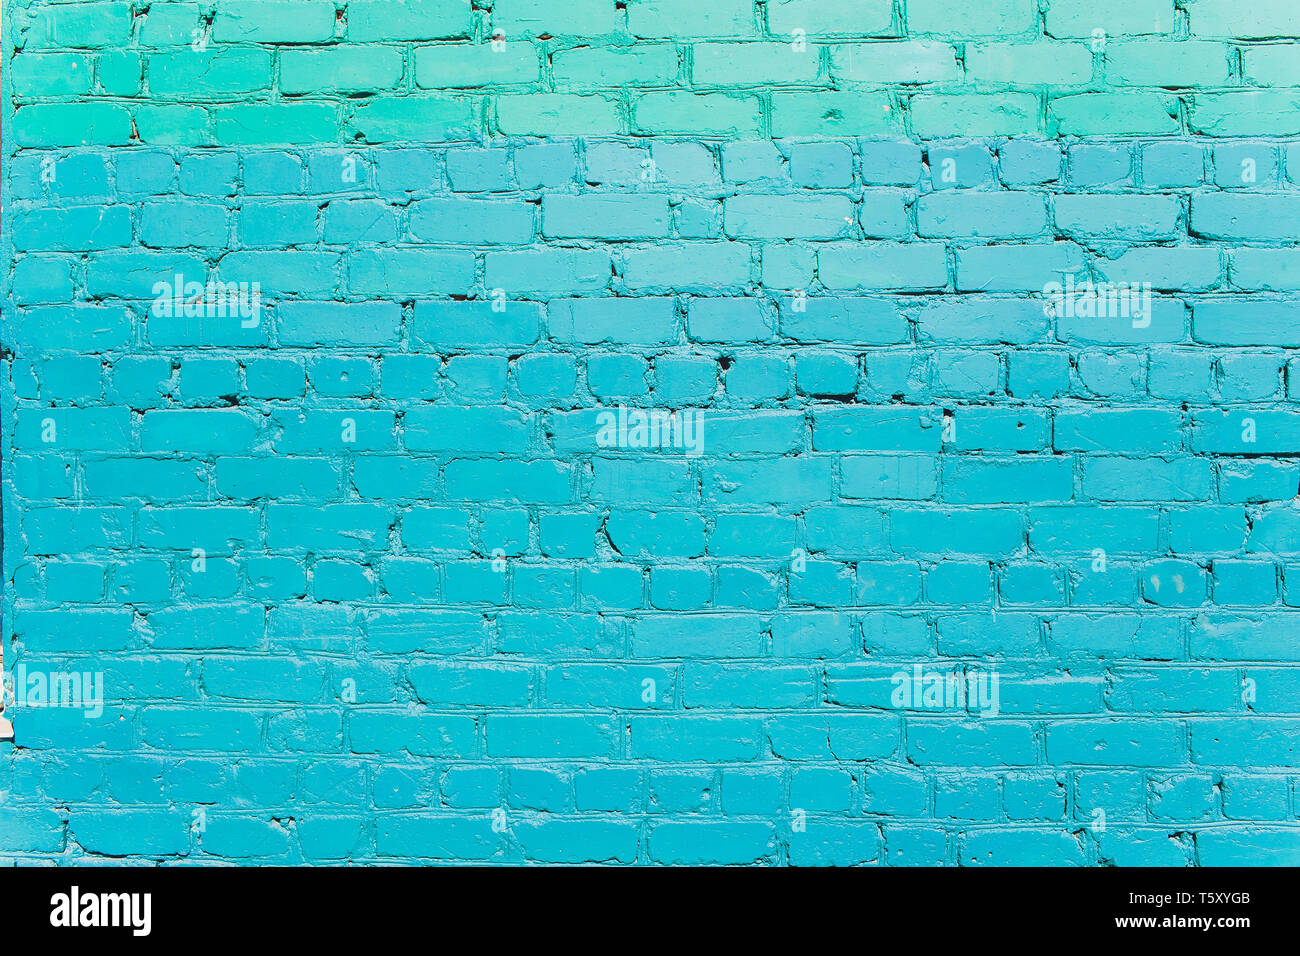 Turquoise brick wall for background or texture. Stock Photo